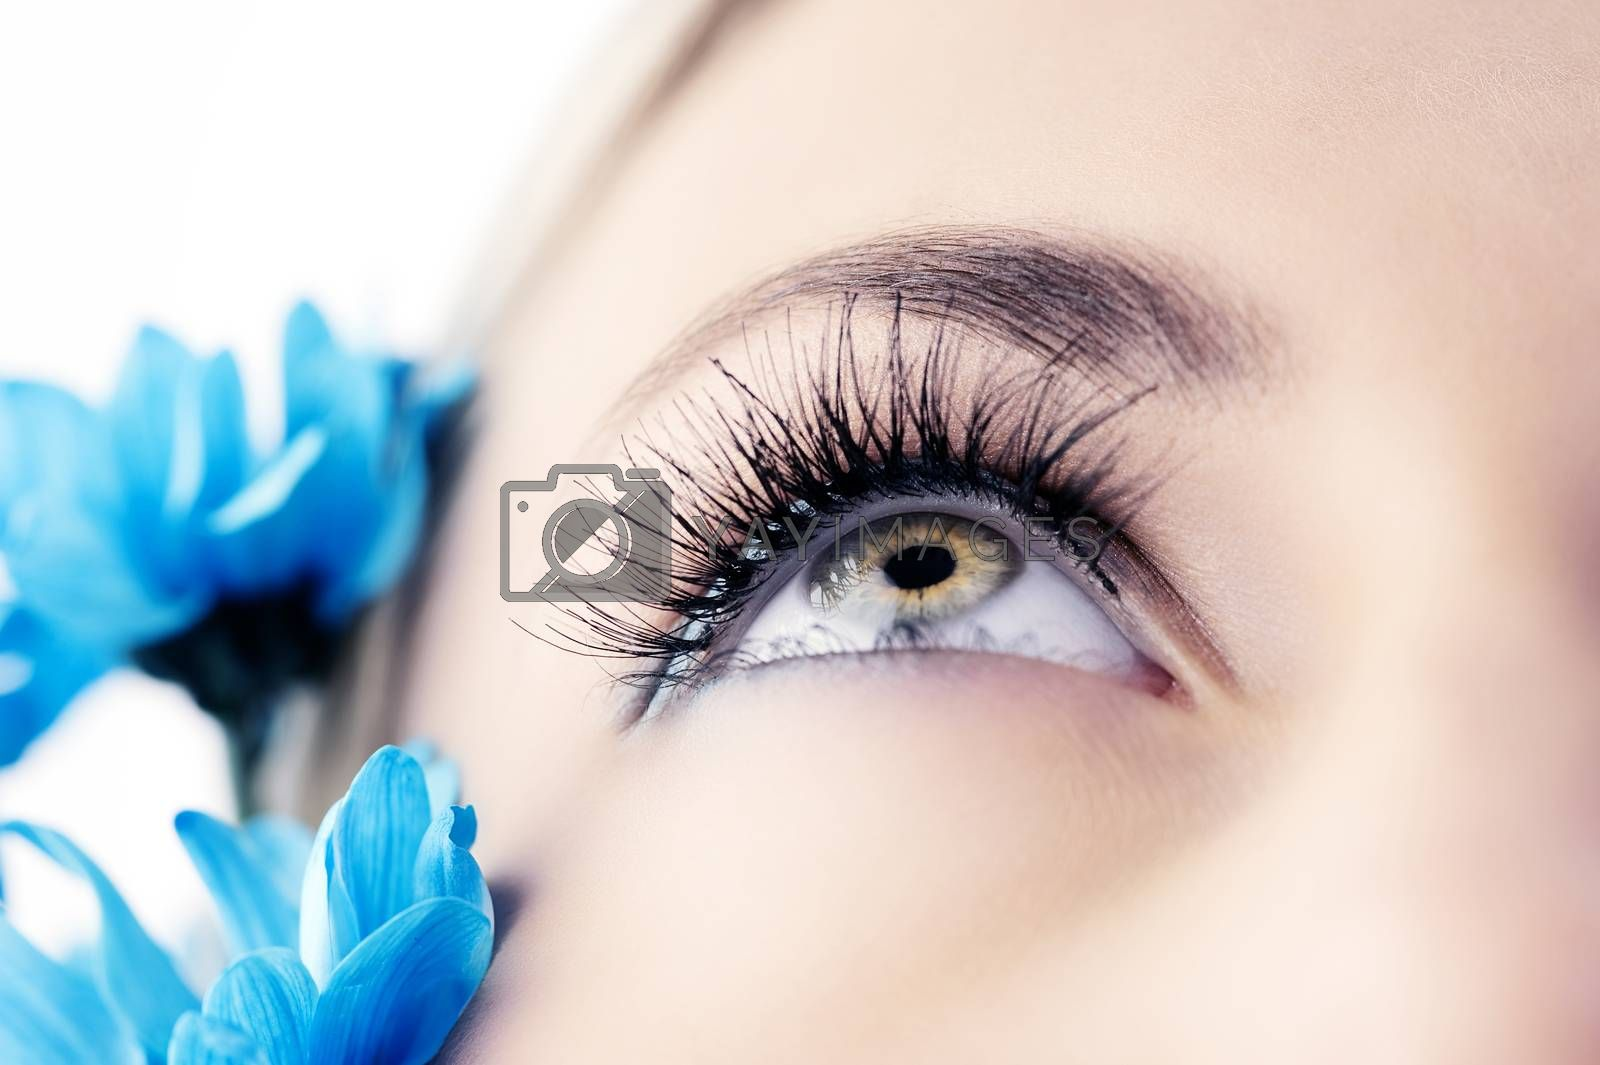 Royalty free image of the eye closeup by fotoCD